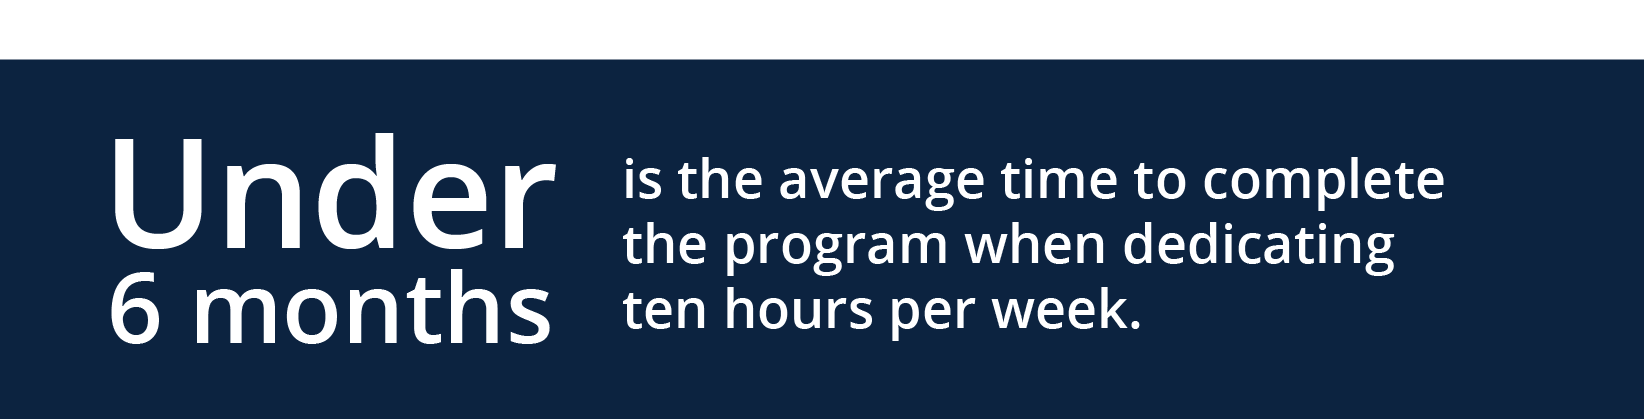 Under 6 months is the average time to complete the program when dedicated 10 hours per week.